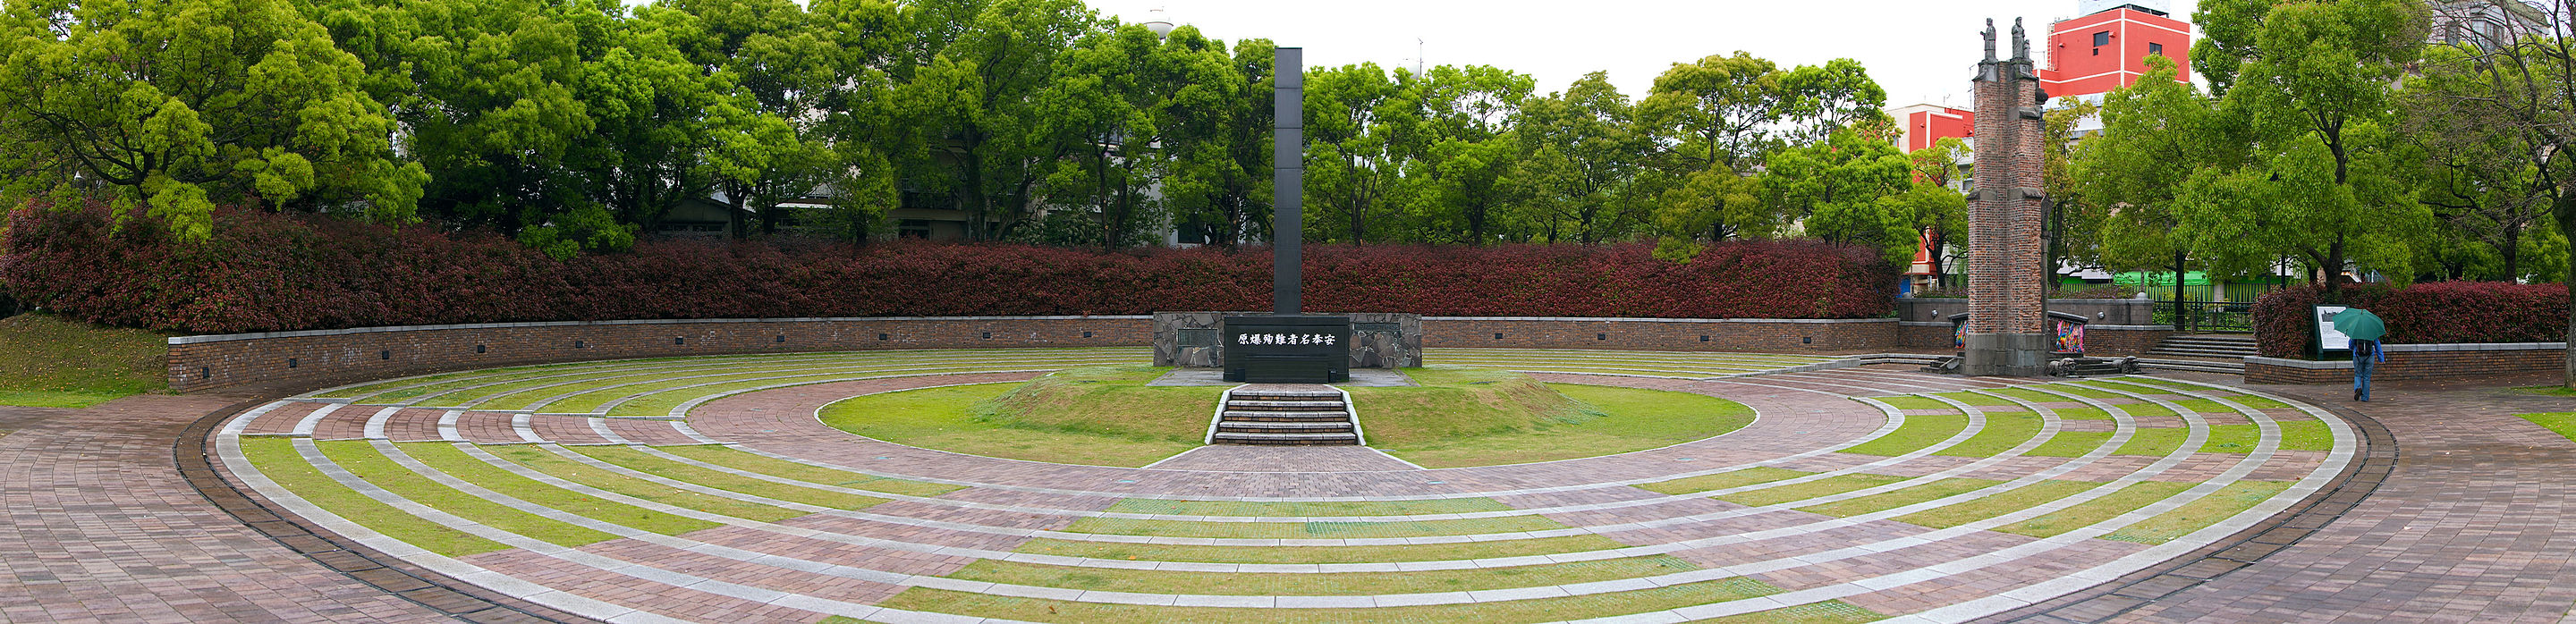 Panoramic view of the monument marking the hypocenter, or ground zero, of the atomic bomb explosion over Nagasaki | Dean S Pemberton, Wikipedia